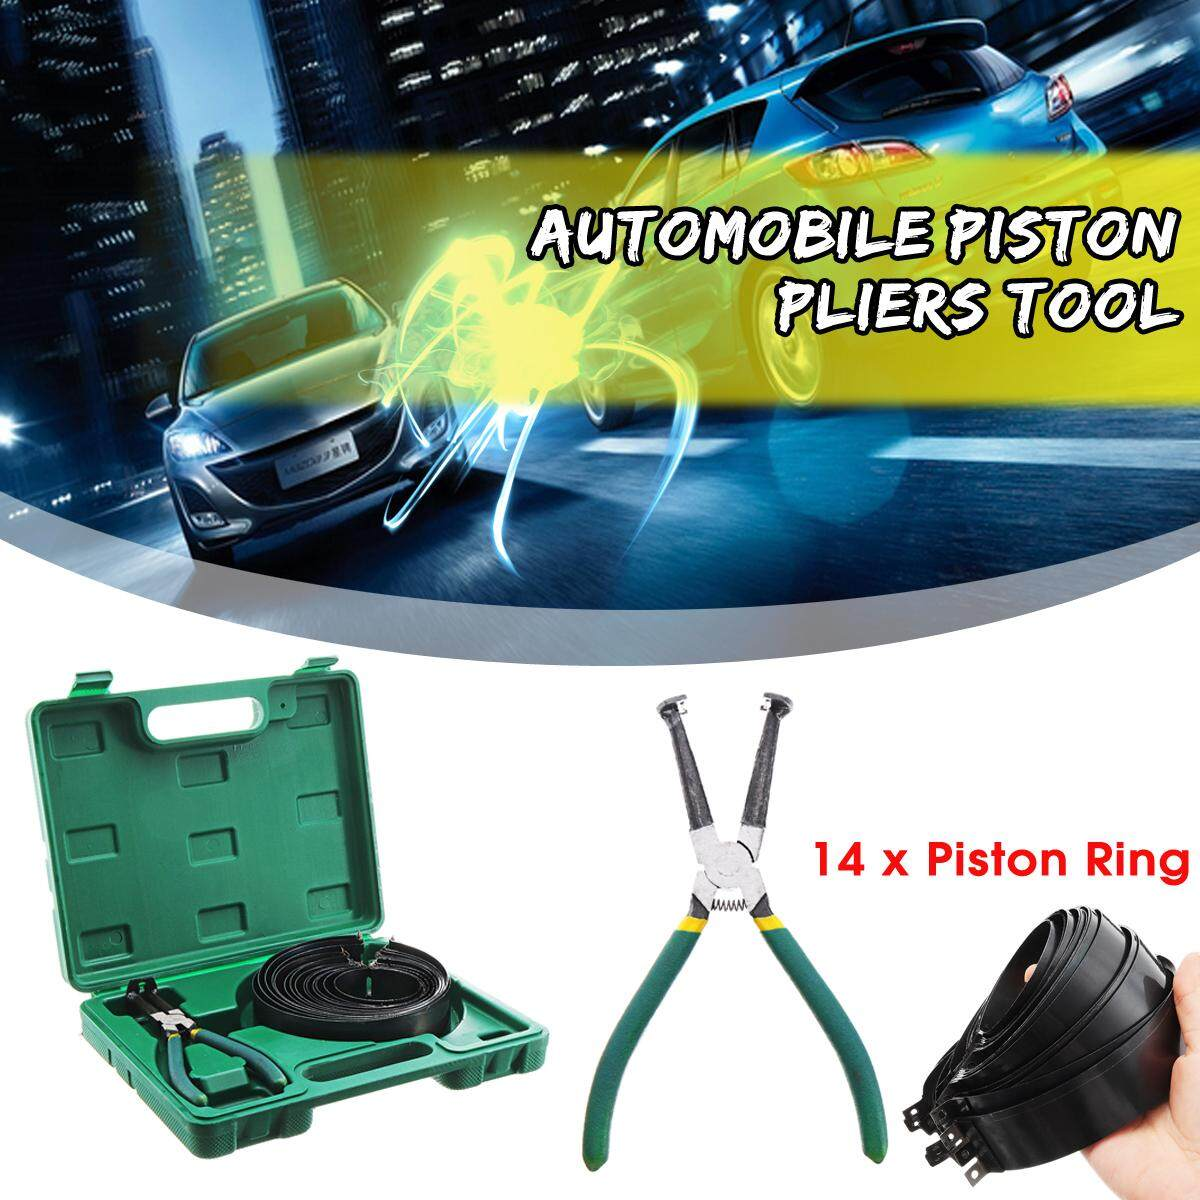 Car Automobile Piston Pliers Tool Piston Ring Disassembly Tools Ring Assembly By Autoleader.